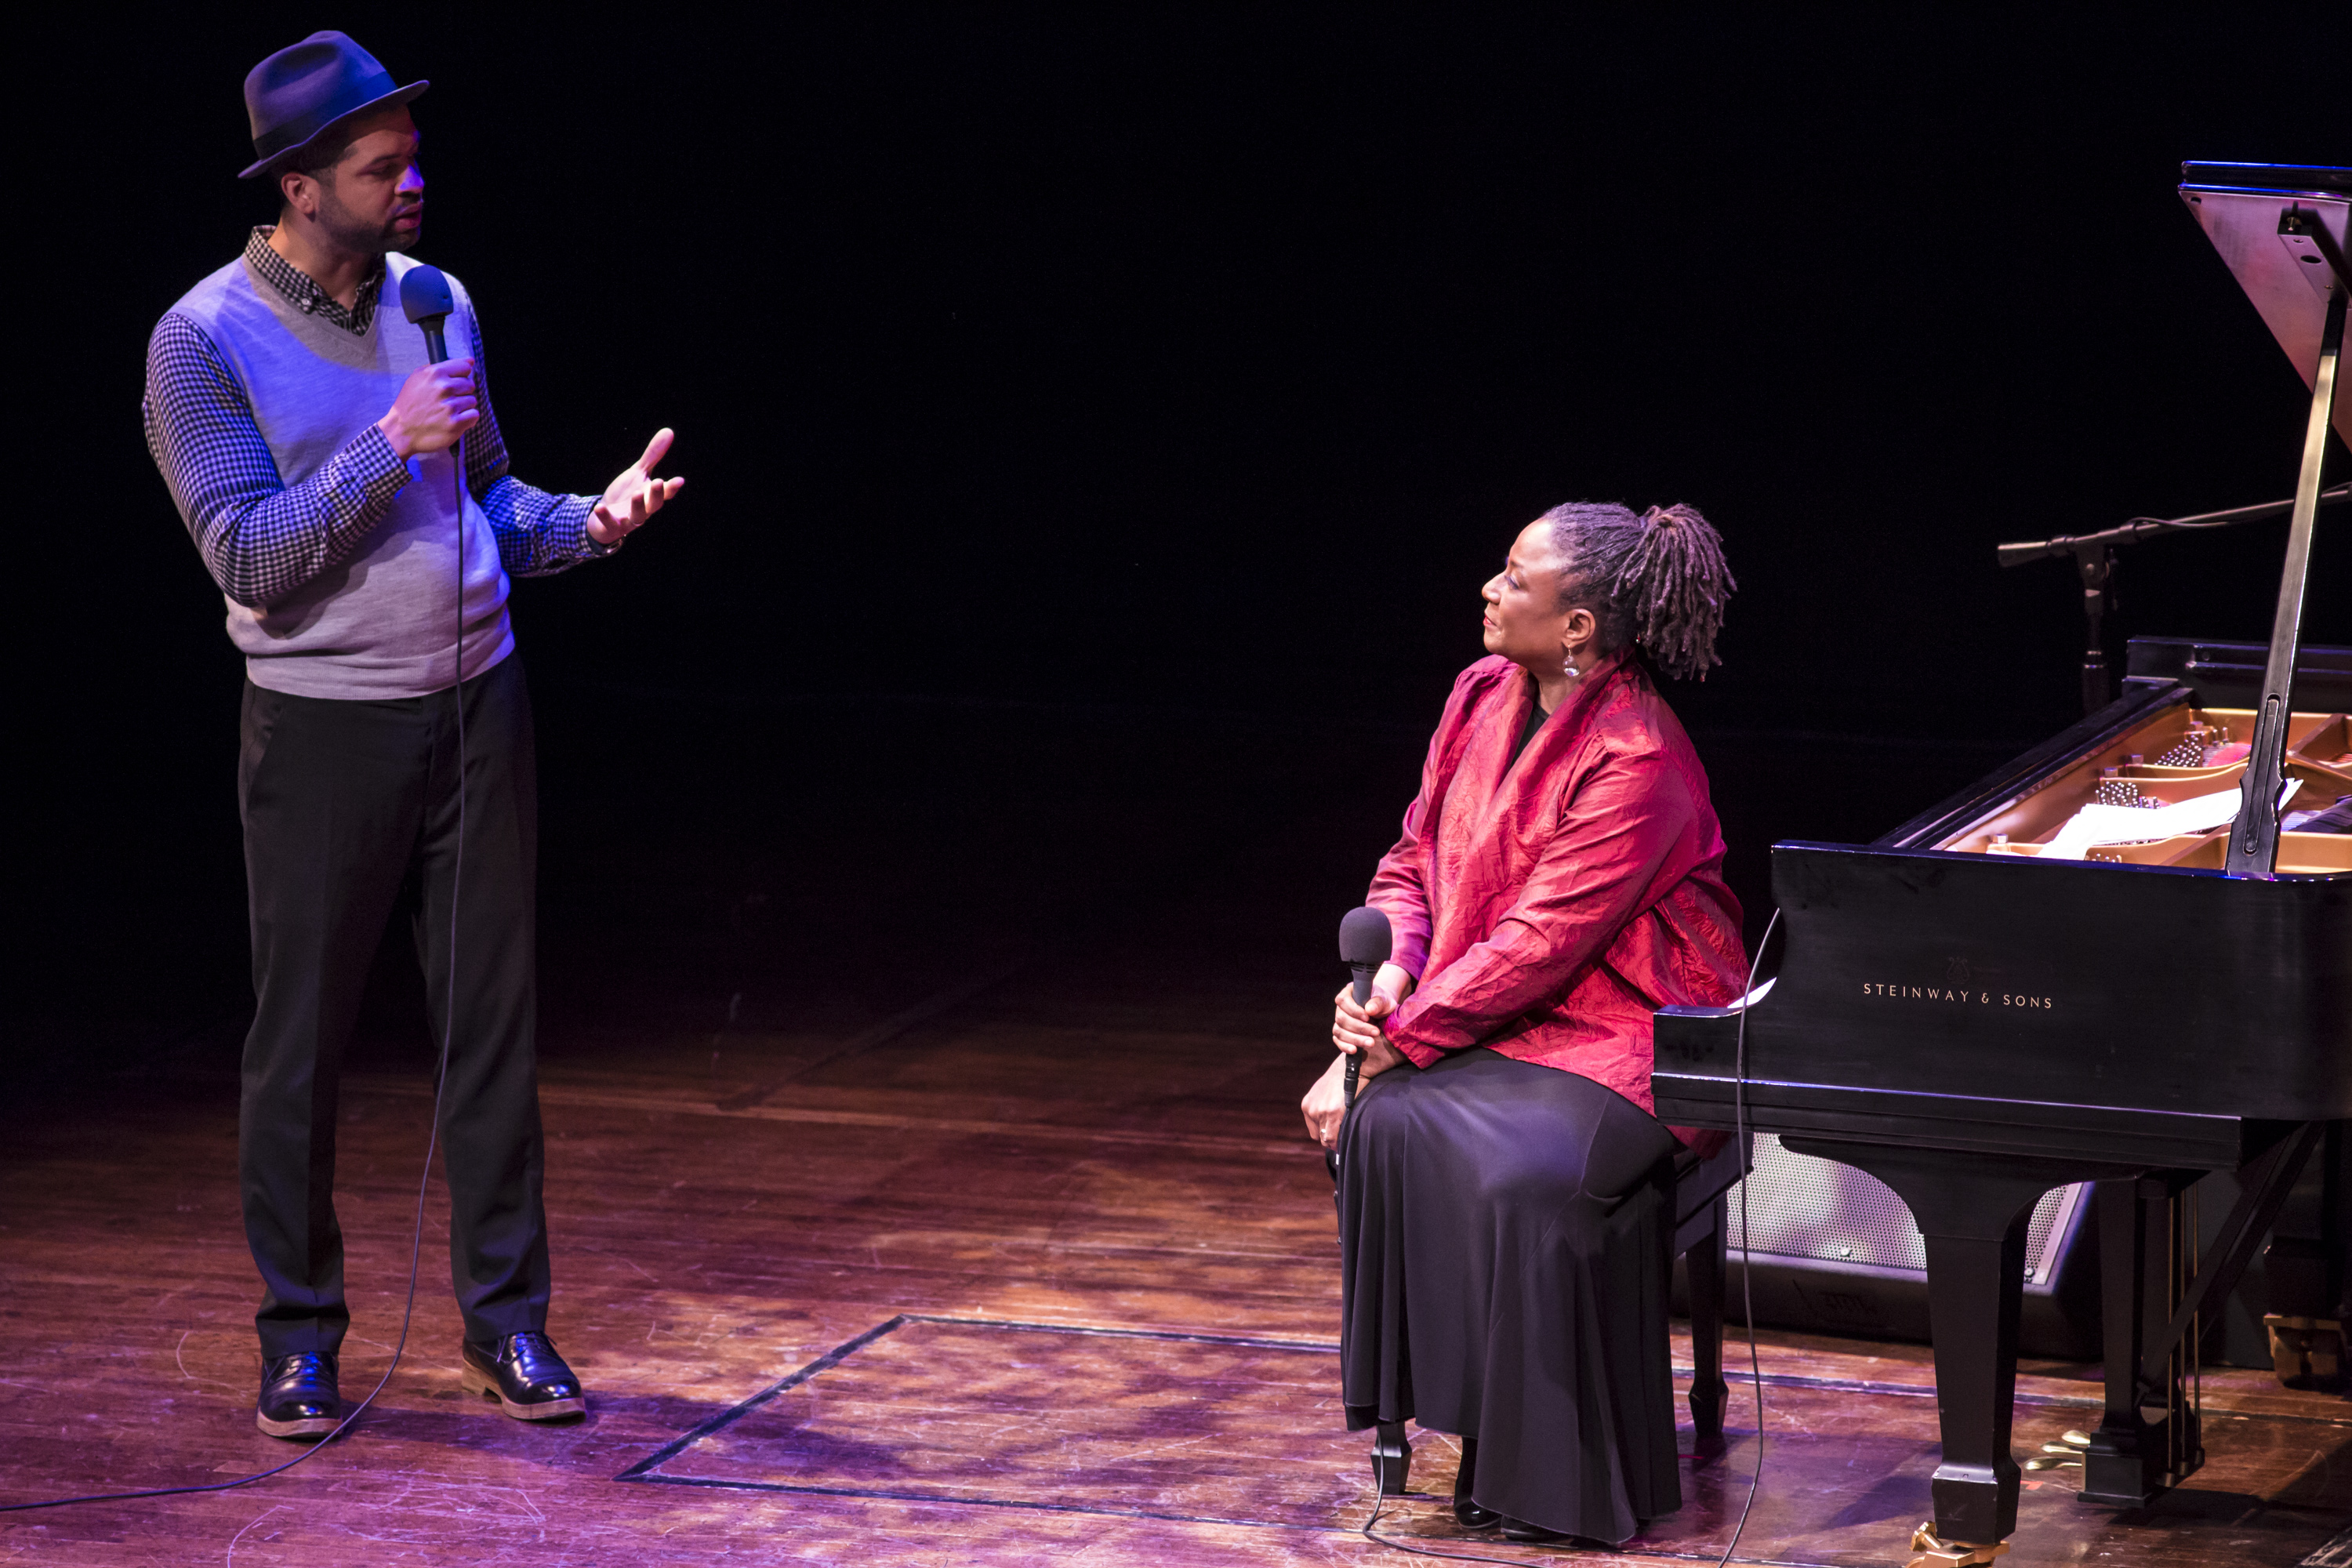 Jason Moran chats with Geri Allen on stage.